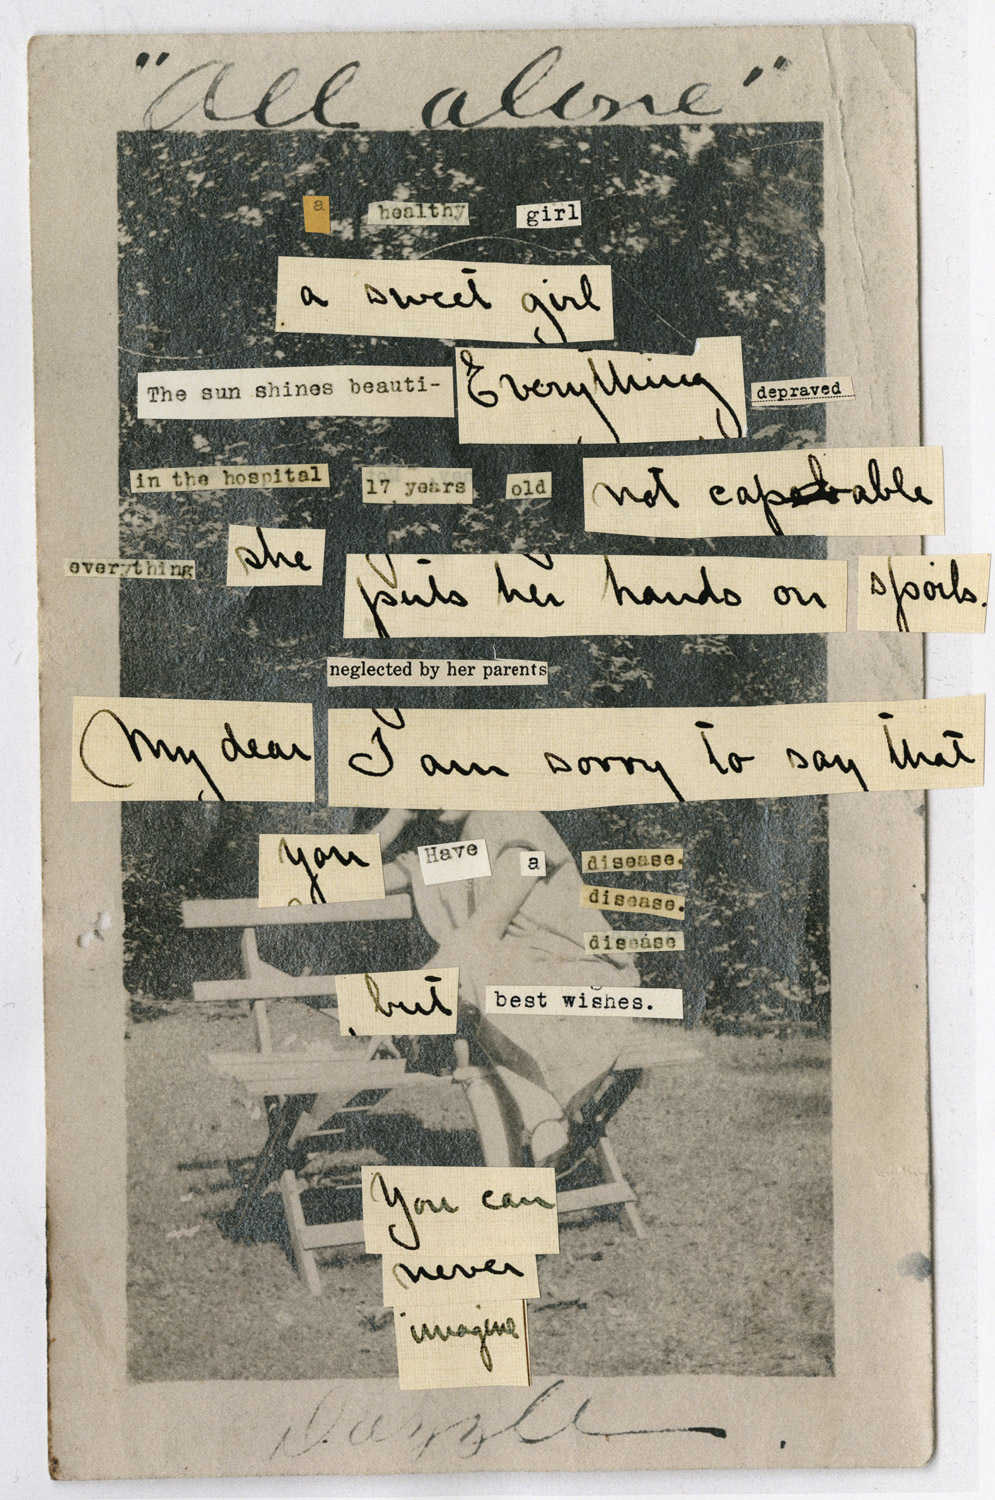 Zine image by James Chaplin